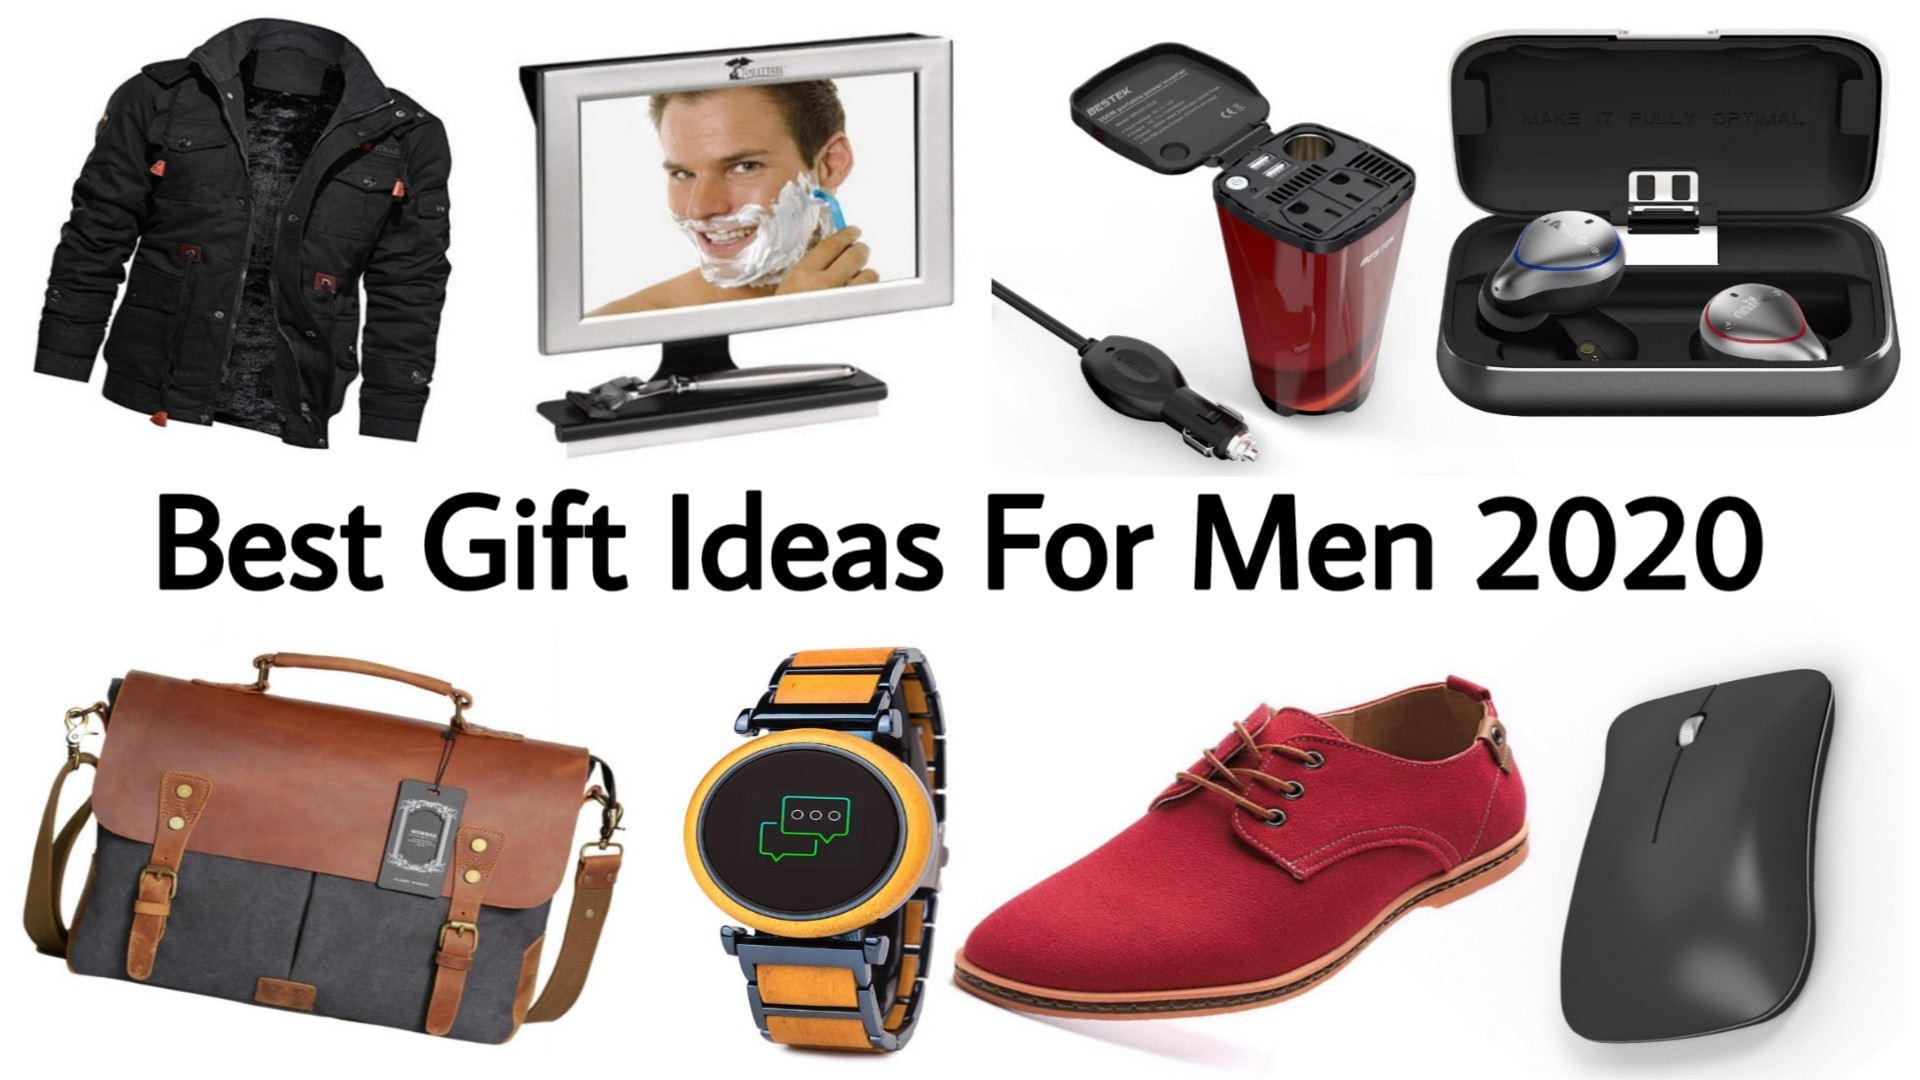 Best Christmas Gifts For Men 2020 Best Christmas Gifts for Men 2020 | Birthday Gift Ideas for Guys